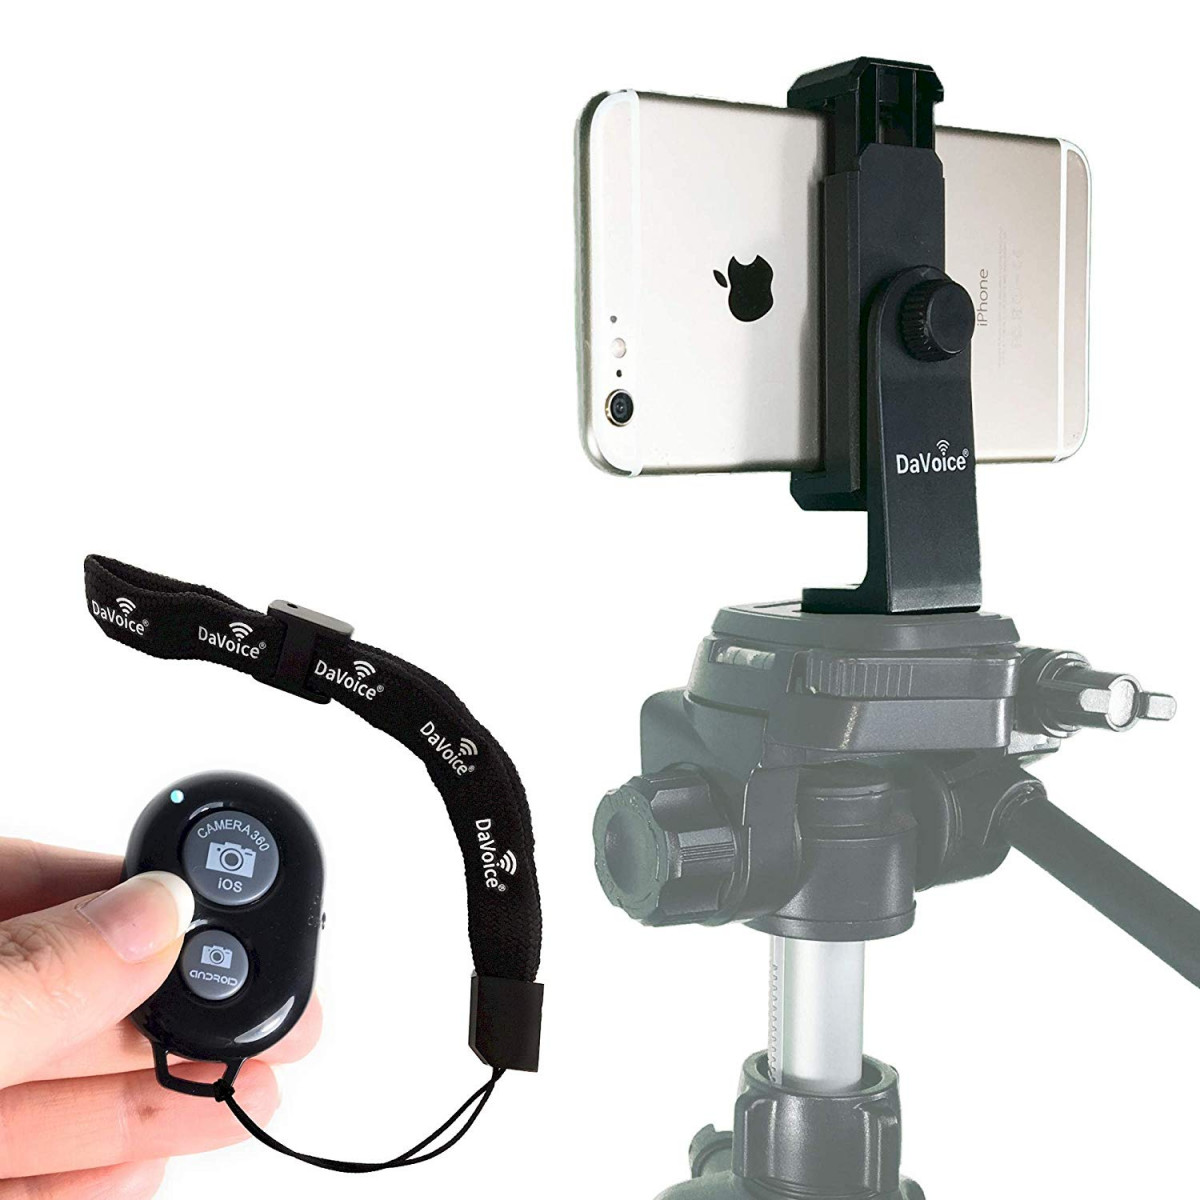 DaVoice Phone Tripod Mount + Bluetooth Remote Control Compatible with  iPhone X XS Max XR 8 8 Plus 7 7 Plus 6 6 Plus 6S 6S Plus 5 - Samsung Galaxy  S9